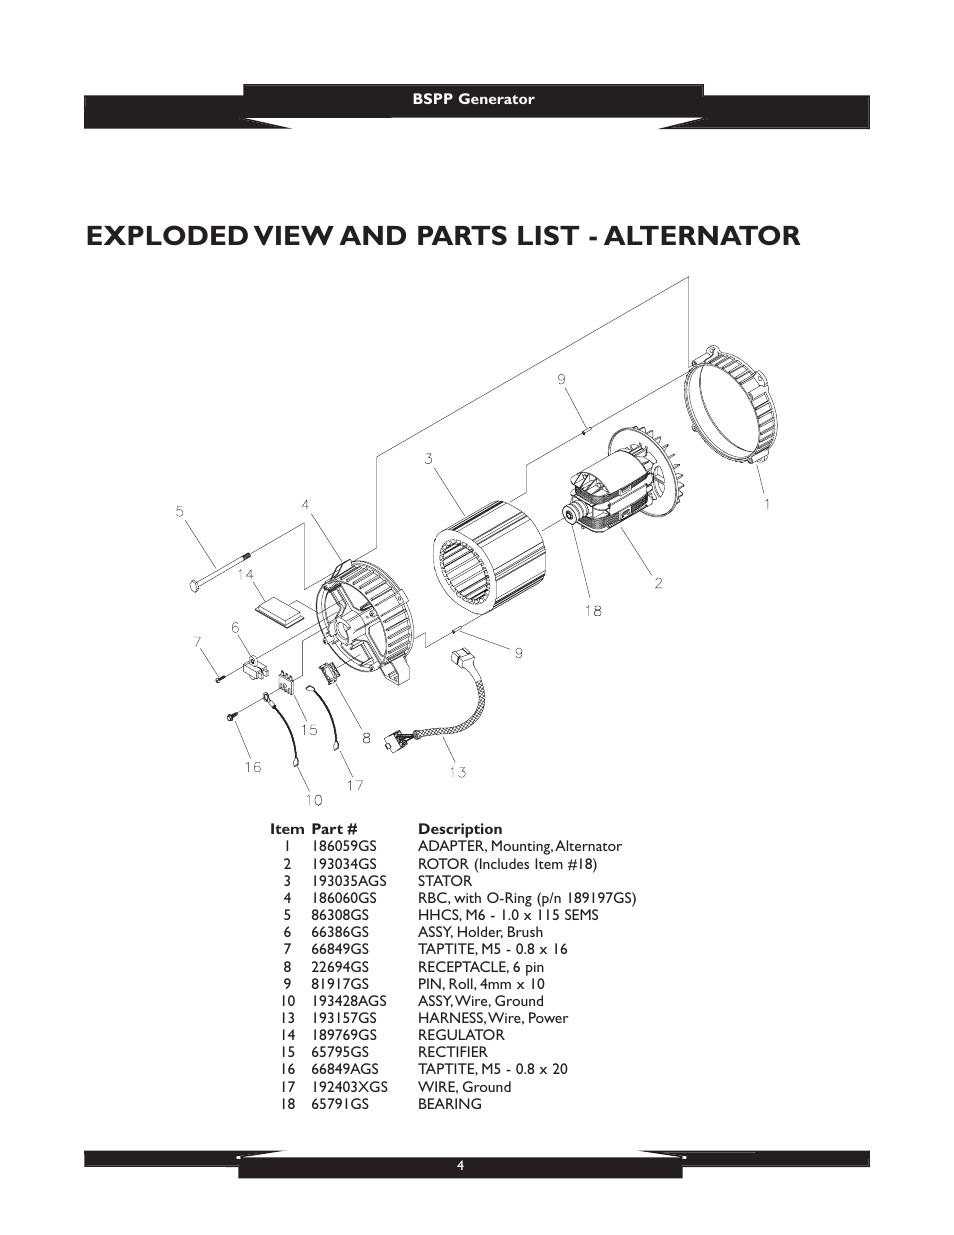 Exploded view and parts list - alternator | Briggs & Stratton 01932 User  Manual | Page 4 / 6